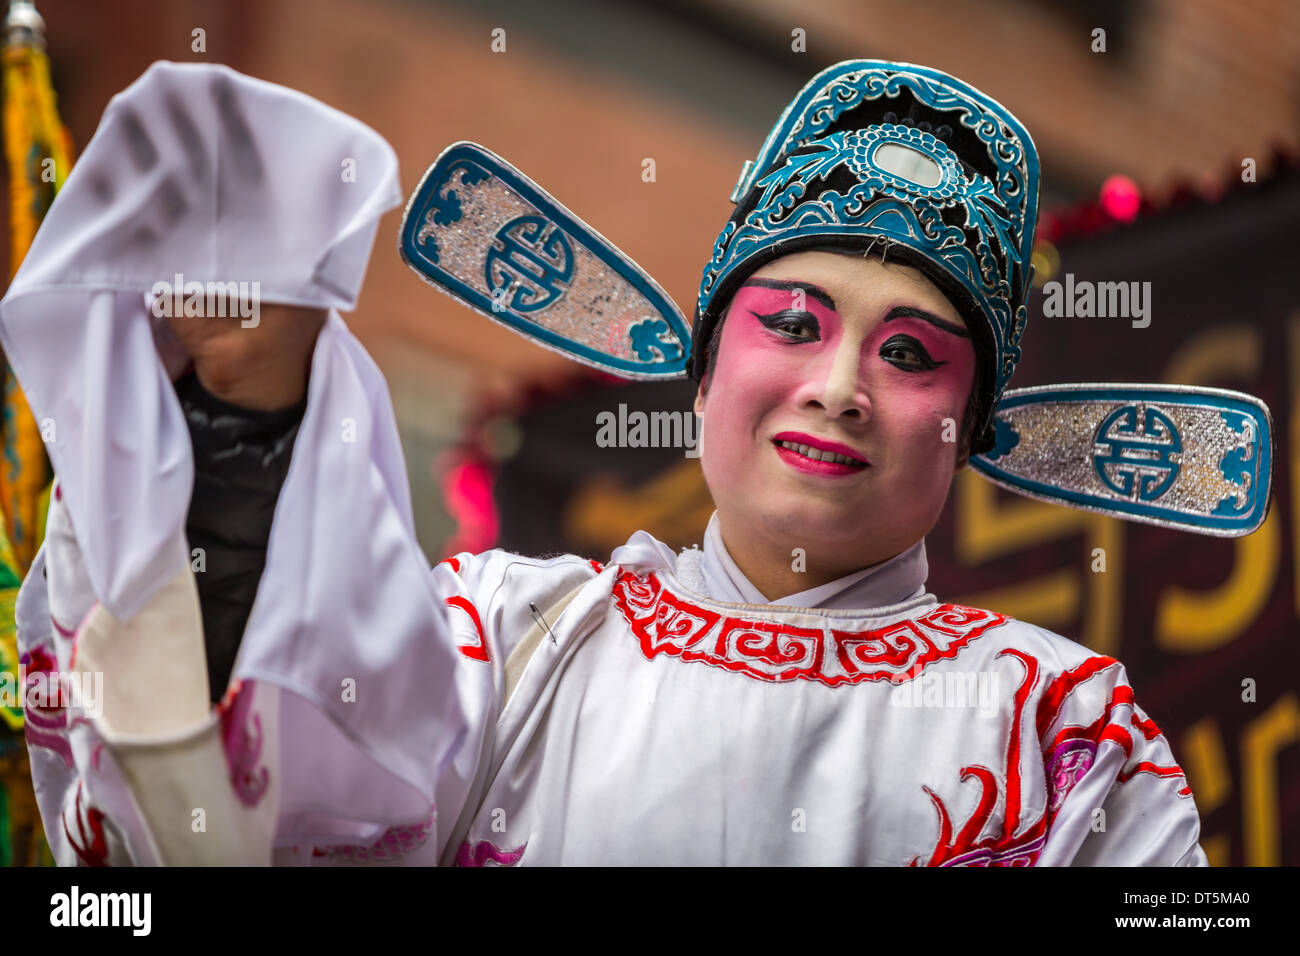 Chinese man wearing makeup parades at the Lunar New Year Festival in Chinatown. - Stock Image